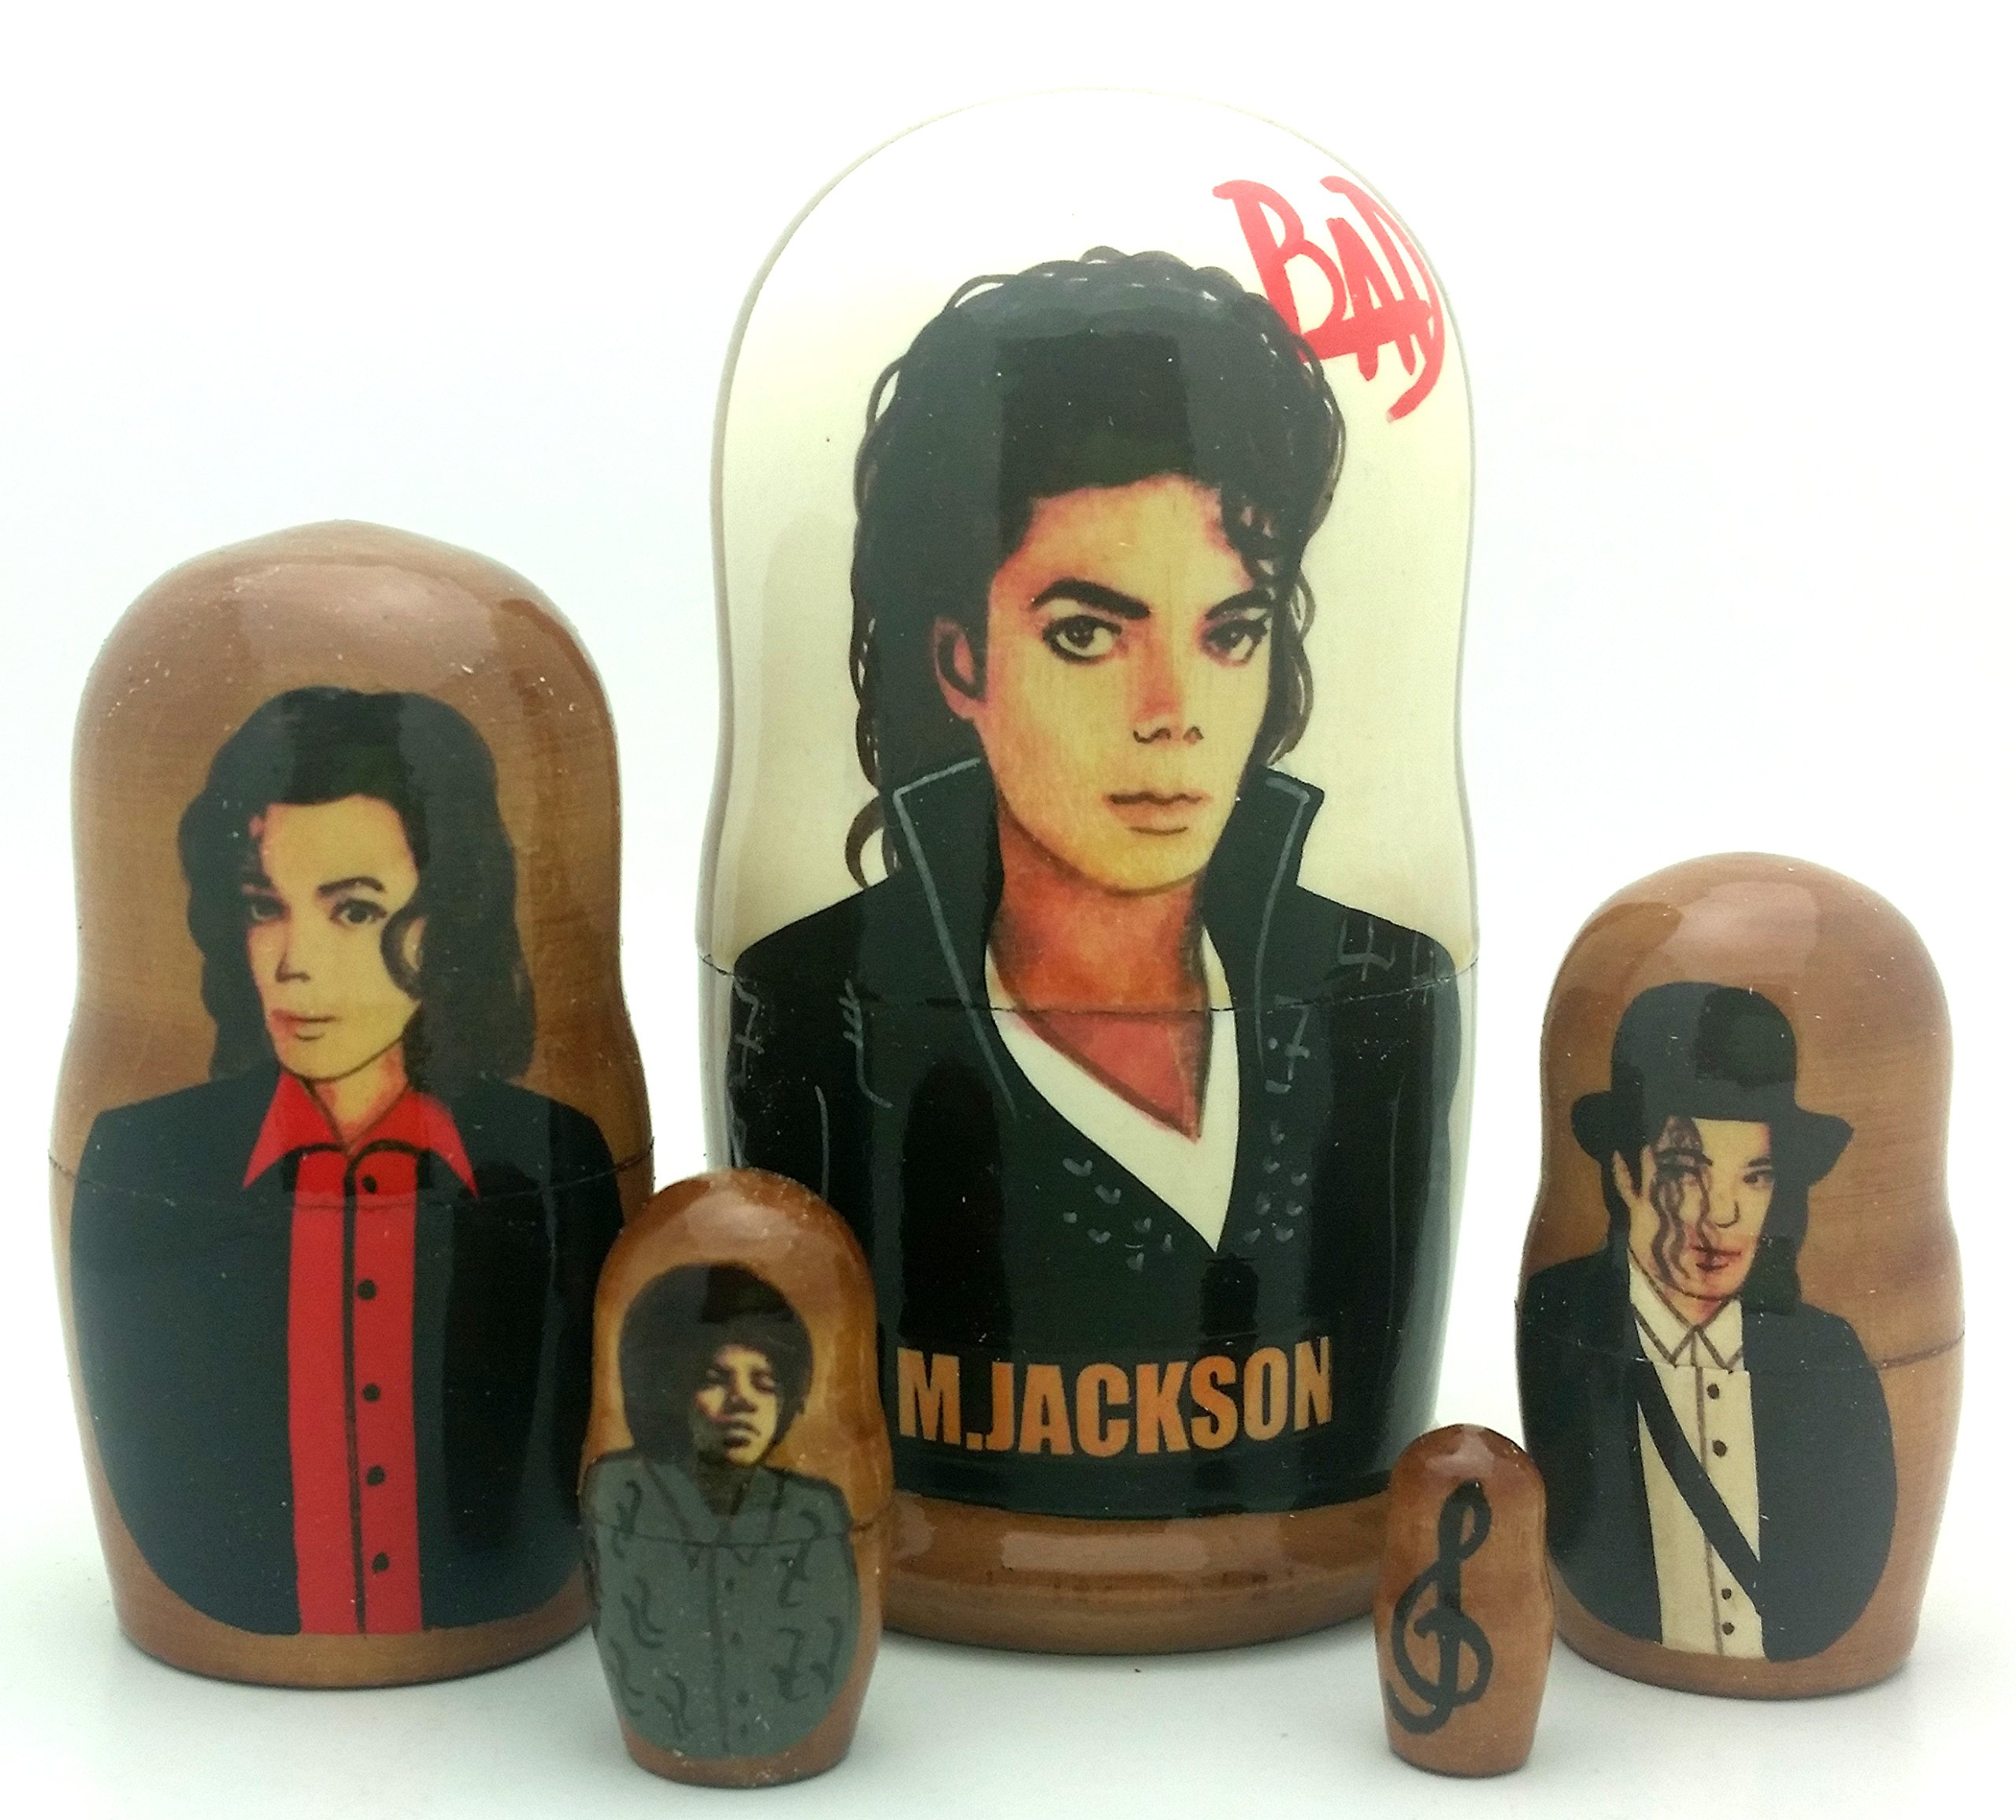 Michael Jackson BAD Russian Nesting dolls 5 piece DOLL Set 4'' Tall by BuyRussianGifts (Image #1)